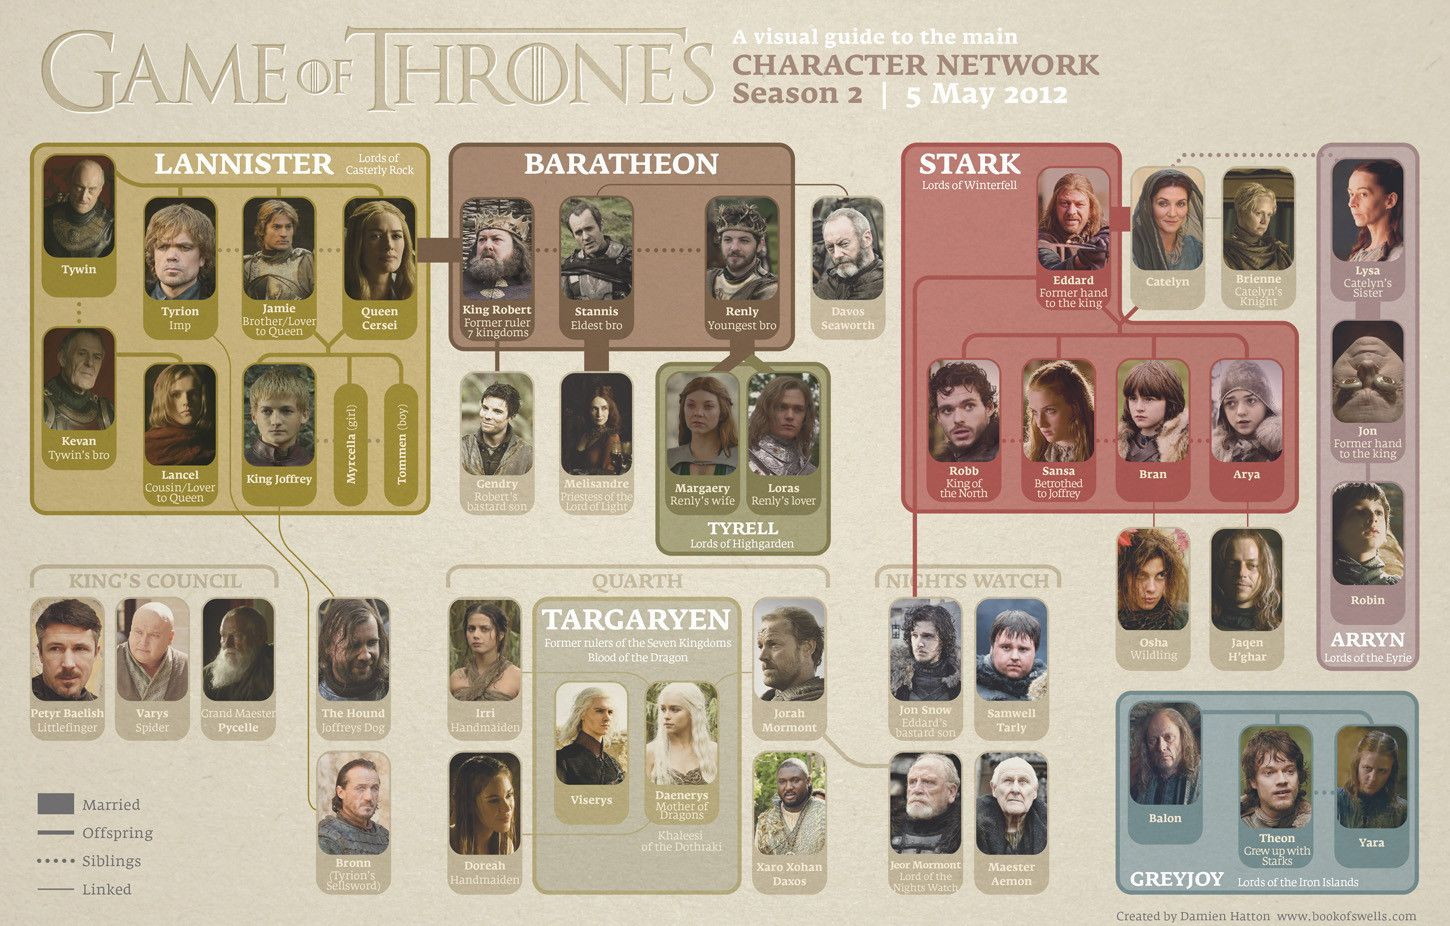 Game of Thrones Season 2 Character/Family Network tree ... Game Of Thrones Season Map on game of thrones facebook timeline cover, game of thrones character glossary, game of thrones board game review, game of thrones garden of bones, game of thrones concept art, game of thrones dad, game of thrones character guide, game of thrones jon snow targaryen art, game of thrones background, game of thrones logo, game of thrones crown stencil, game of thrones white walkers, game of thrones cover art, game of thrones cast, game of thrones character names, game of thrones alliances, game of thrones hbo, game of thrones bran, game of thrones sigils flags, game of thrones assistant,